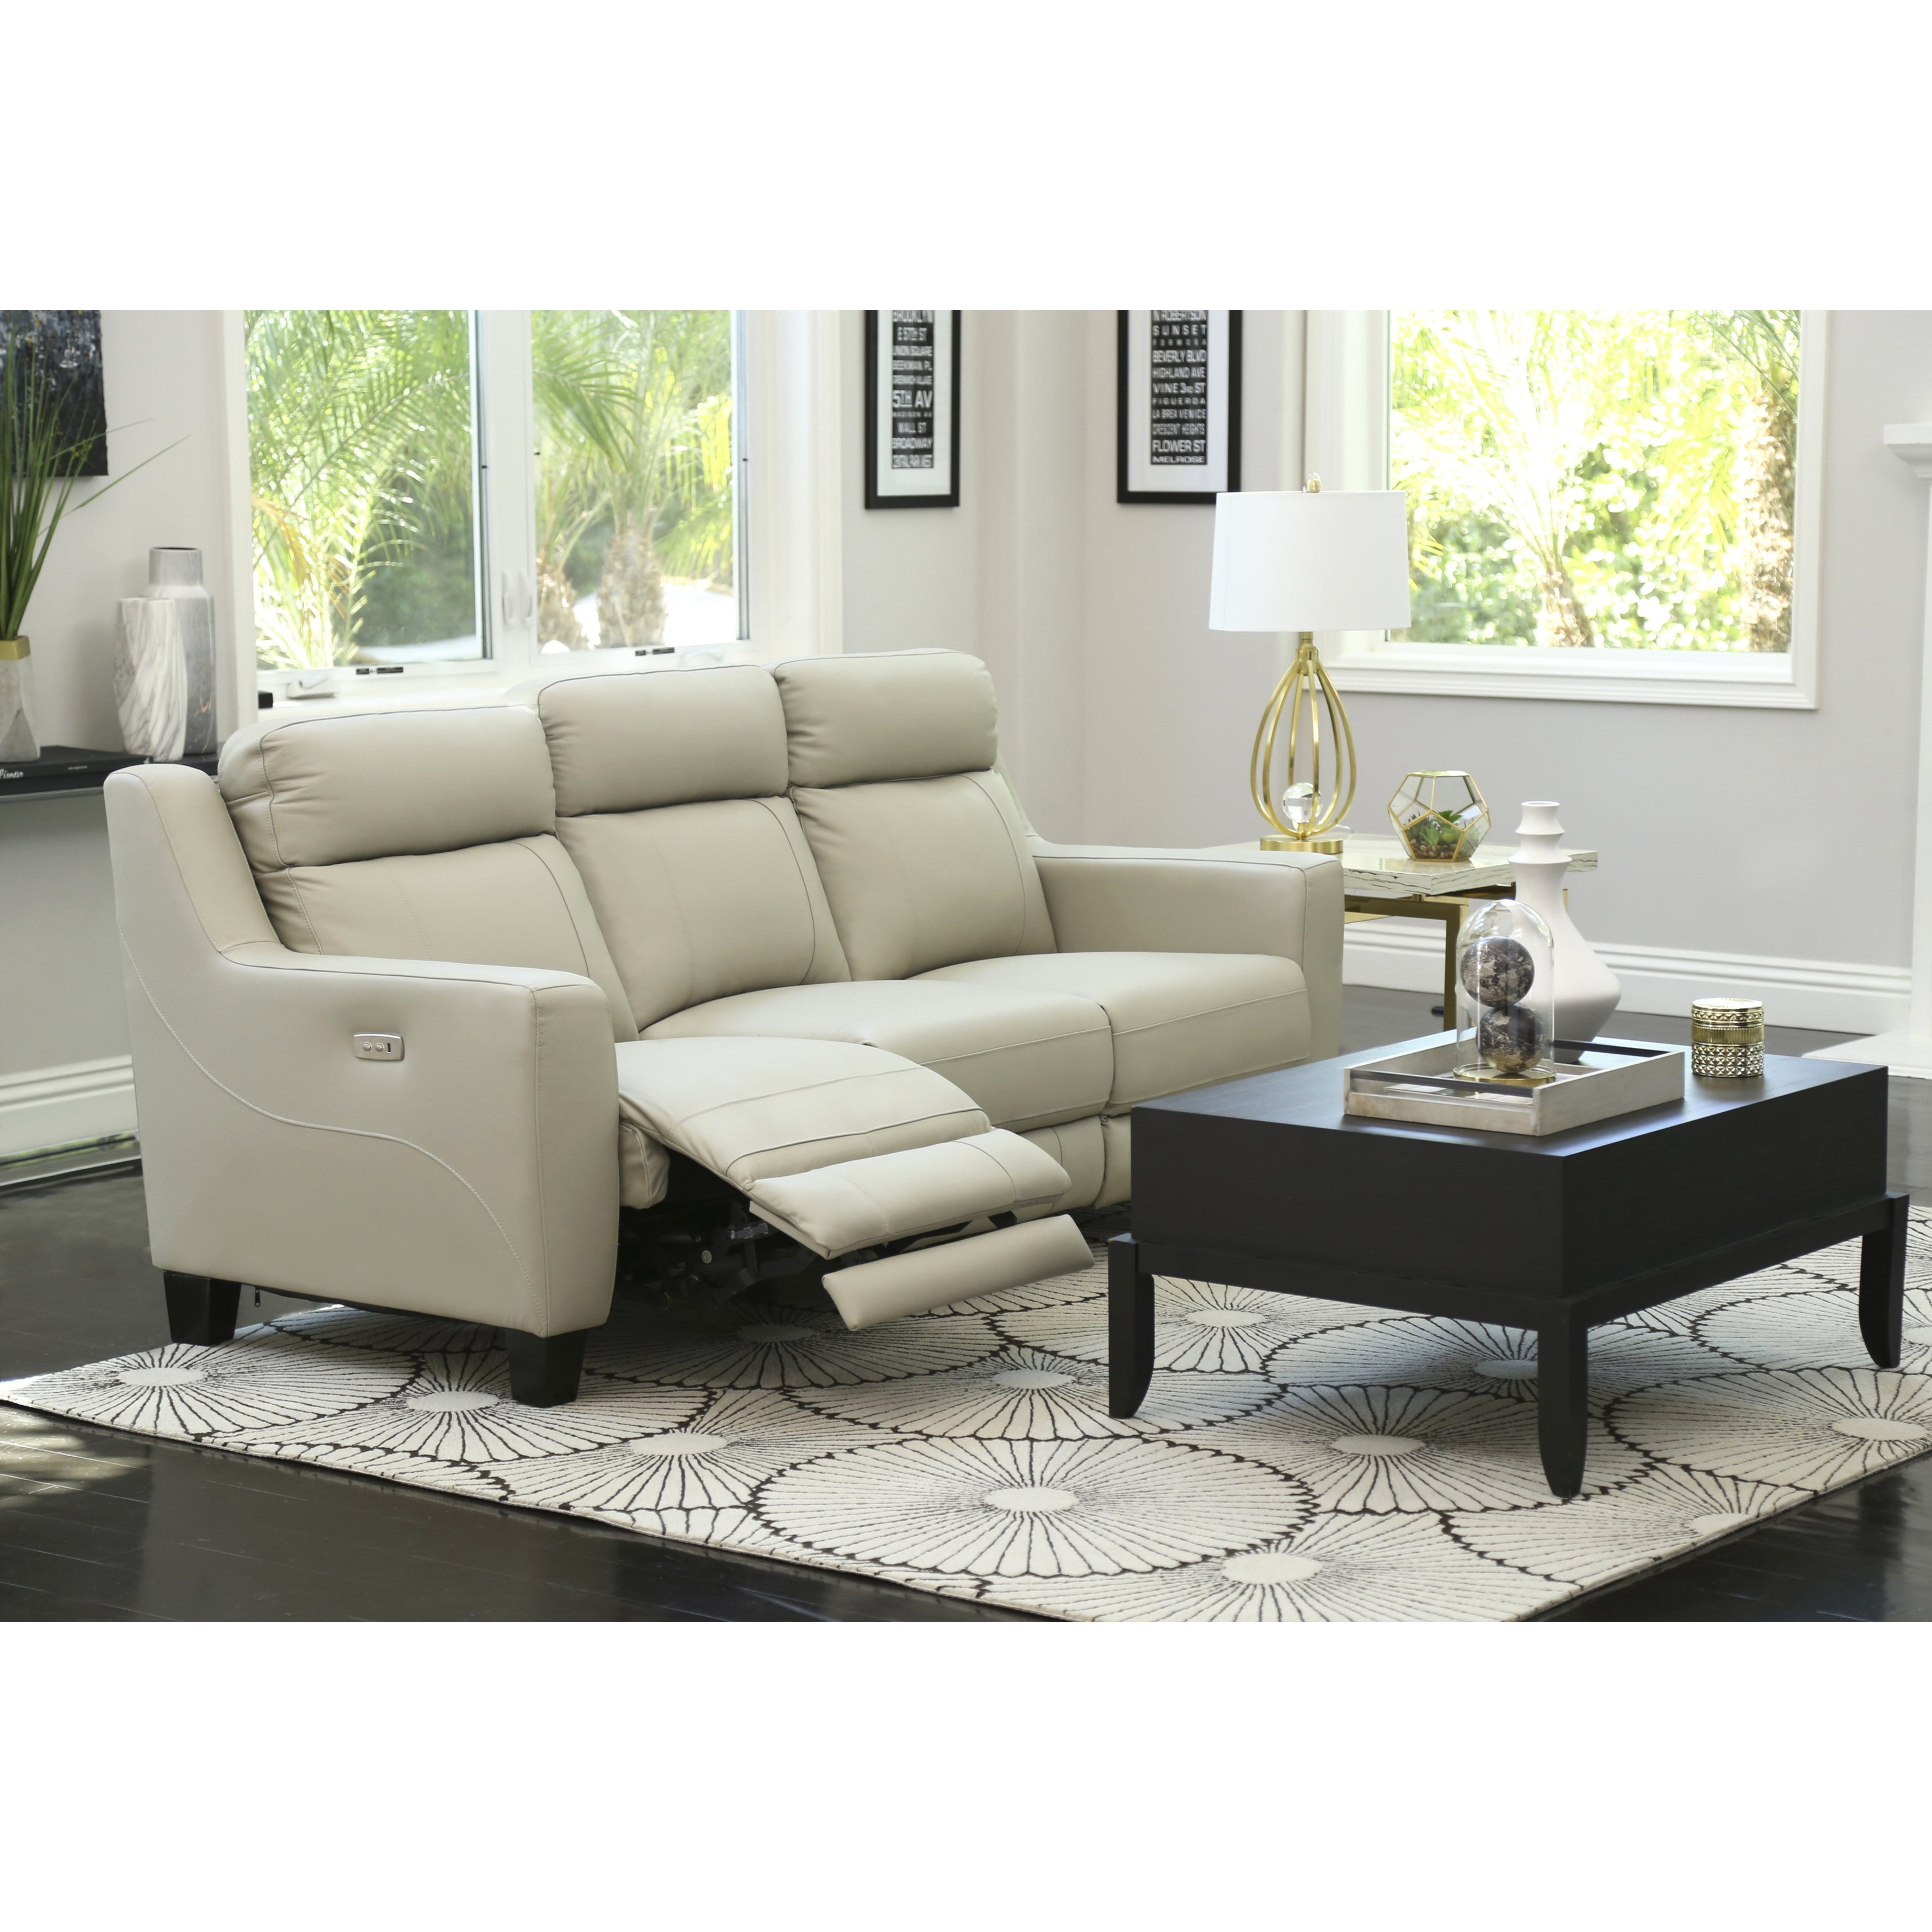 image for hover design uts bennett leather sofa product mcleland to reclining scl c fingerhut power zoom look full over click recliner nivre